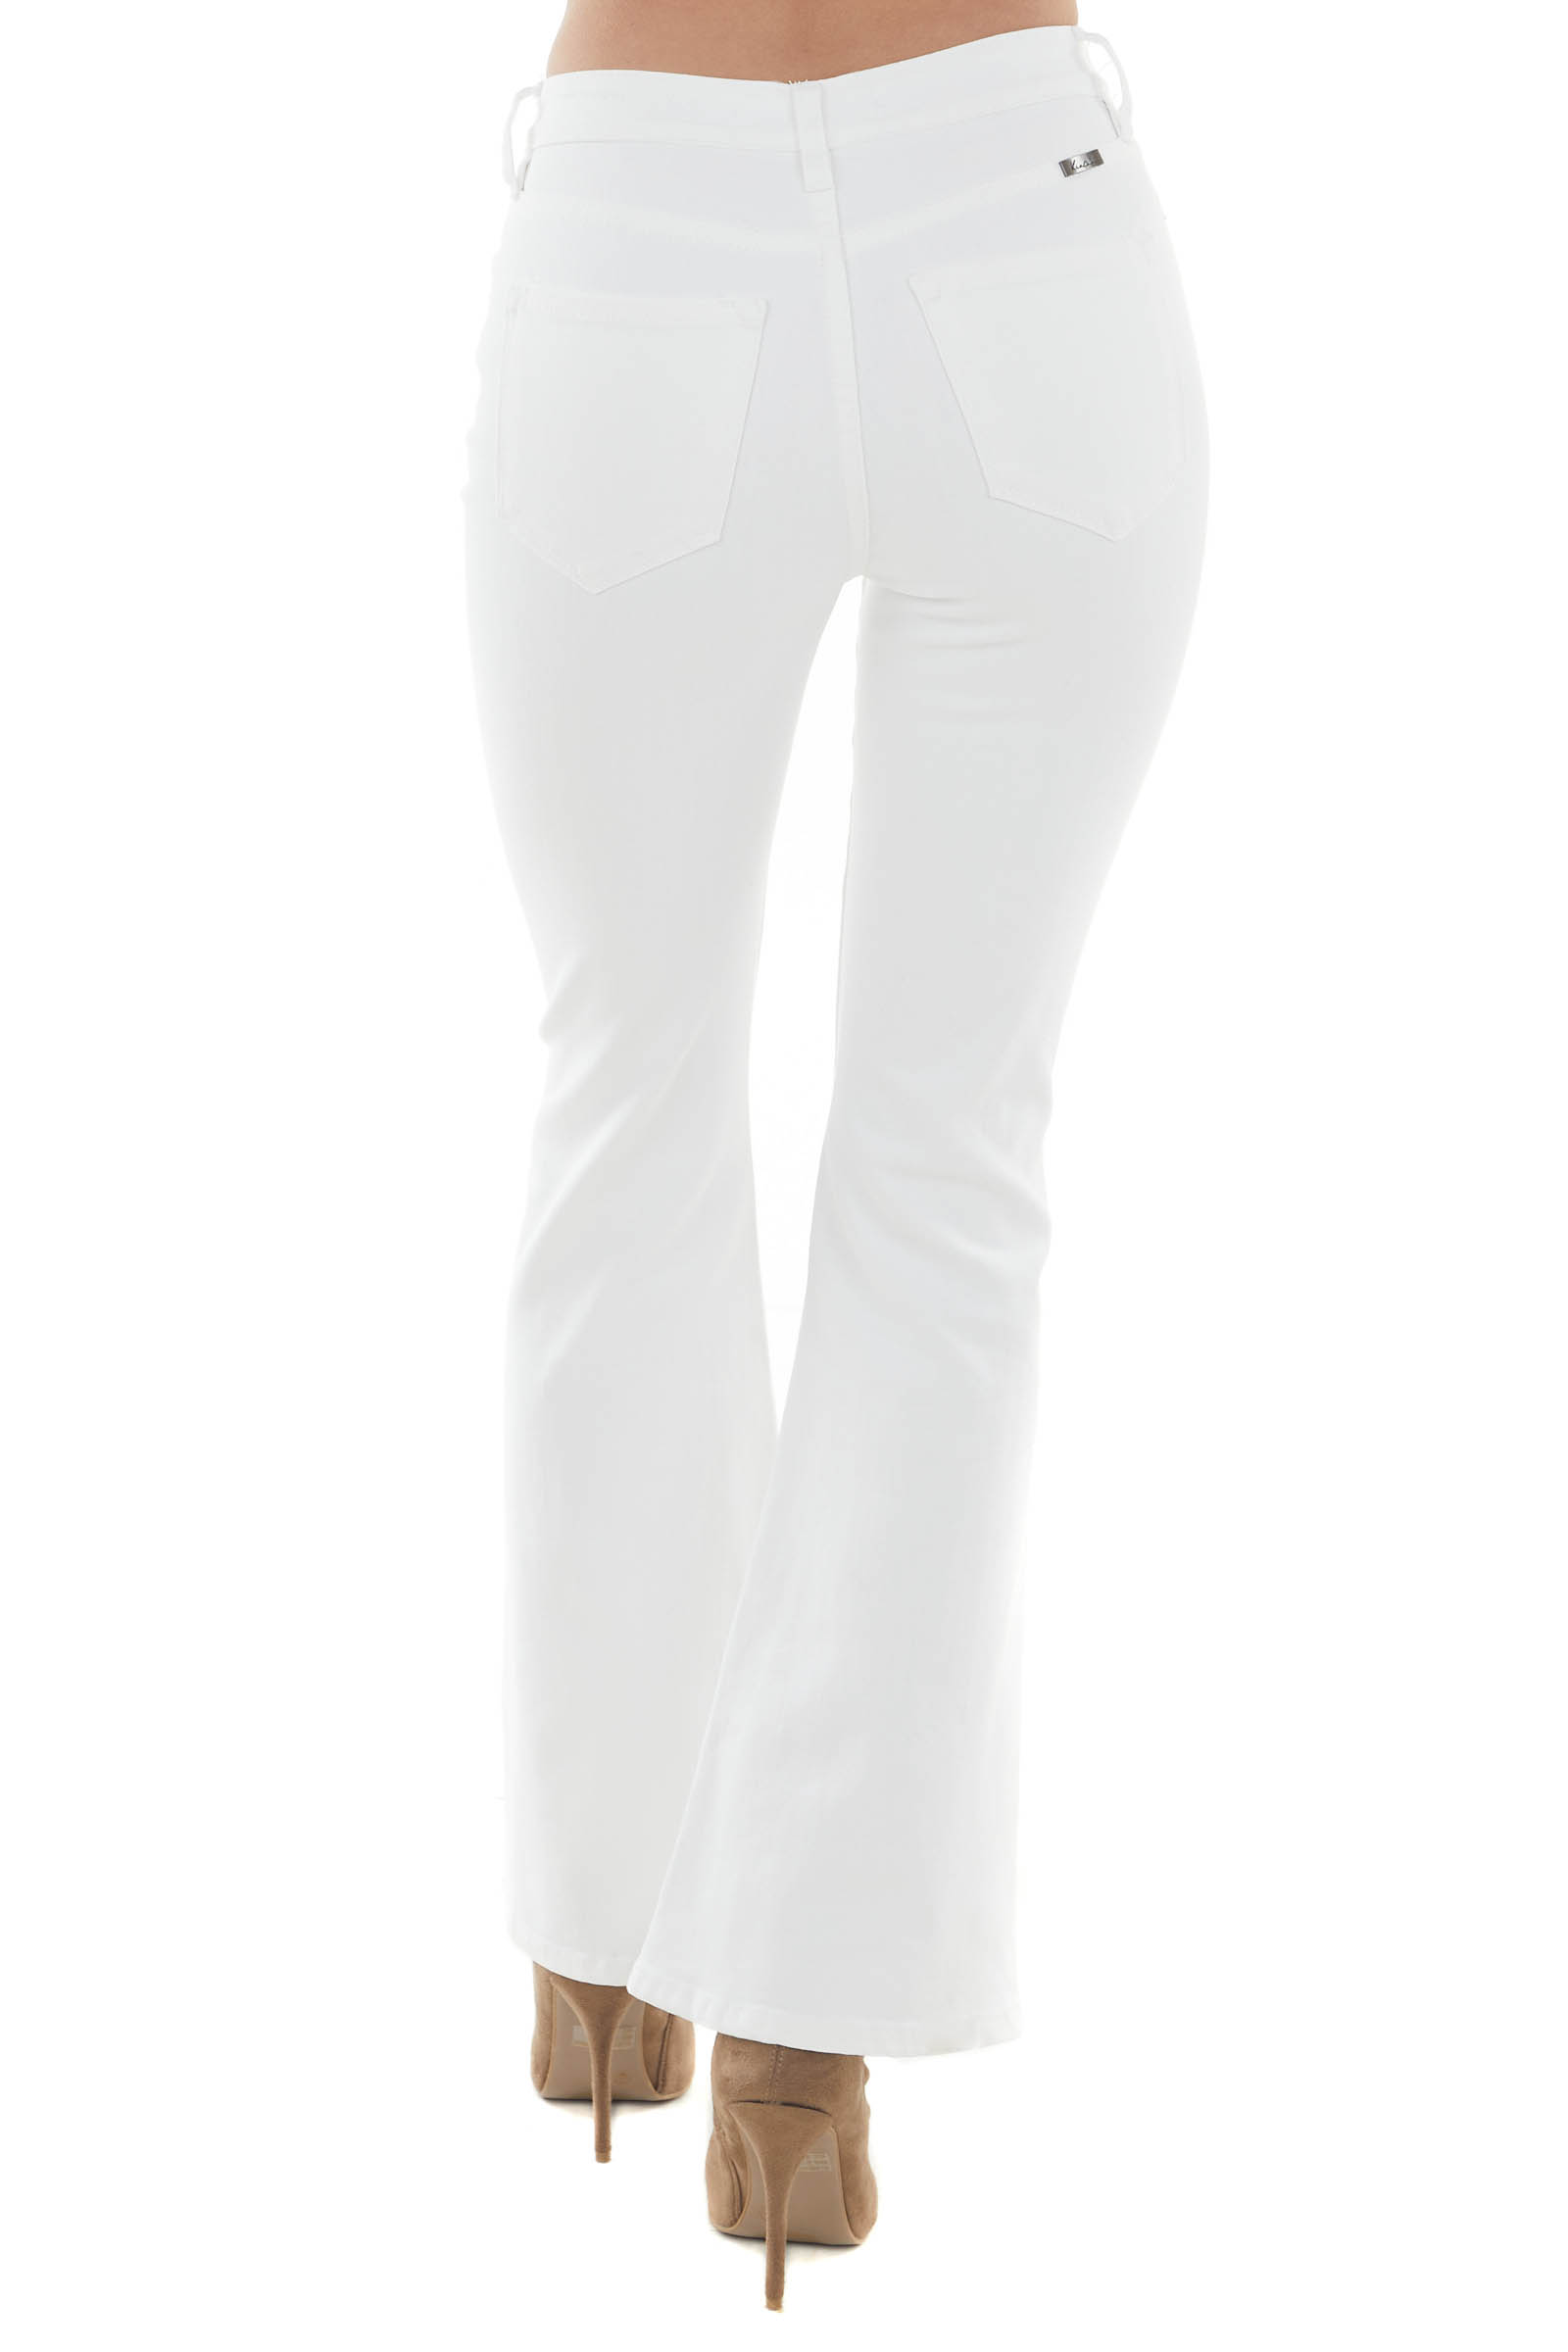 Pearl White High Rise Bootcut Distressed Jeans